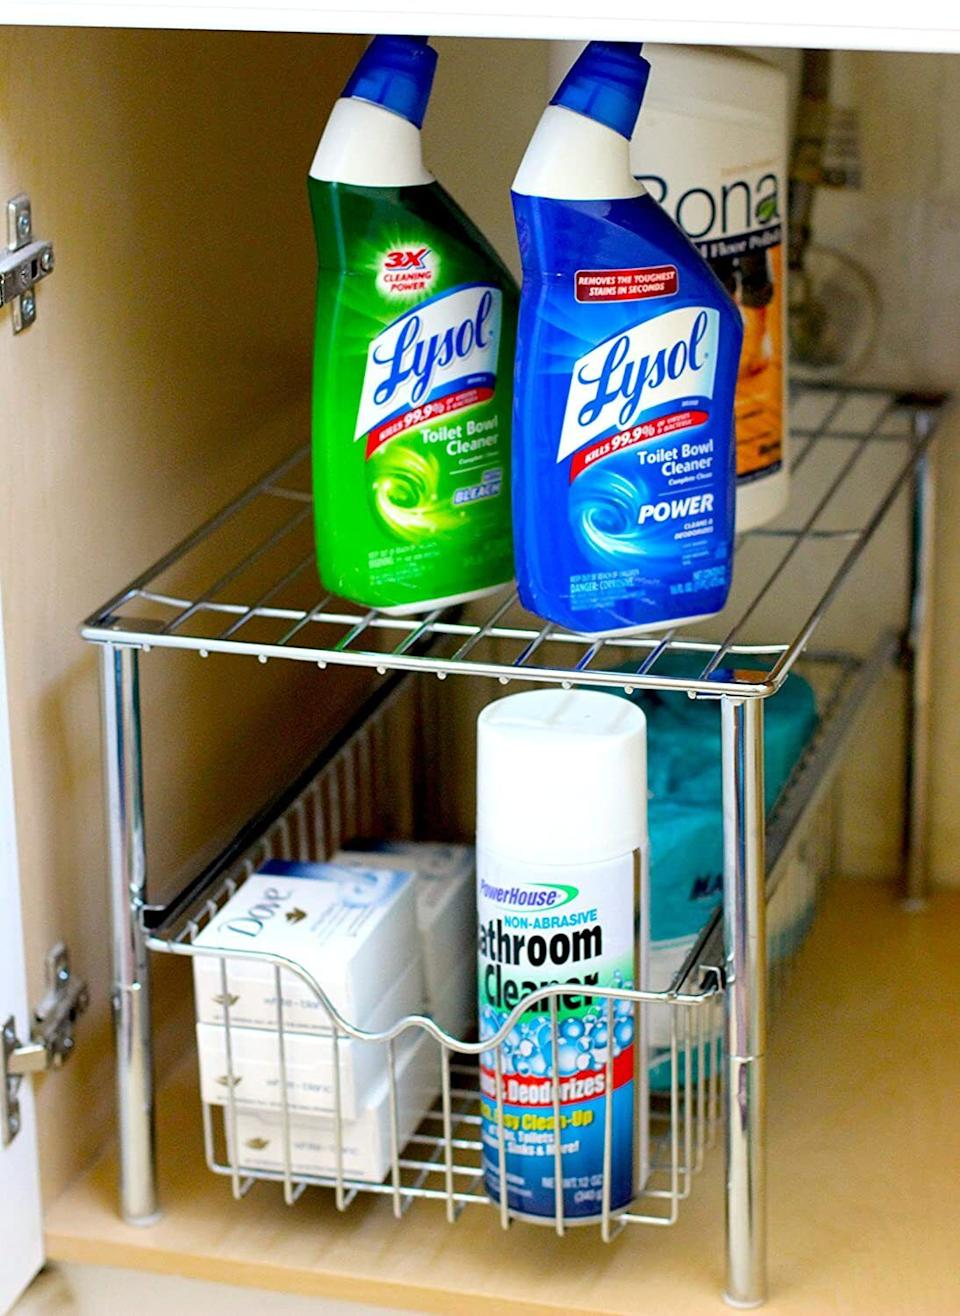 """Designed with a shelf on top, this drawer will help maximize space in your cleaning cupboard.<br /><br /><strong>Promising review:</strong>""""These are nice pieces that helped me organize underneath my bathroom sink! They fit perfectly!<strong>After organizing everything, I was so surprised I had so much more room than I grabbed more items out of the linen closet to fill it up.</strong>I still have a lot of room left. I bought these based on the high ratings and they hold true. (This is Brad's wife.)"""" —<a href=""""https://www.amazon.com/dp/B00KV5NRHC?tag=huffpost-bfsyndication-20&ascsubtag=5834502%2C10%2C46%2Cd%2C0%2C0%2C0%2C962%3A1%3B901%3A2%3B900%3A2%3B974%3A3%3B975%3A2%3B982%3A2%2C16267131%2C0"""" target=""""_blank"""" rel=""""noopener noreferrer"""">Brad J. Leahy</a><br /><br /><strong>Get it on Amazon for<a href=""""https://www.amazon.com/dp/B00KV5NRHC?tag=huffpost-bfsyndication-20&ascsubtag=5834502%2C10%2C46%2Cd%2C0%2C0%2C0%2C962%3A1%3B901%3A2%3B900%3A2%3B974%3A3%3B975%3A2%3B982%3A2%2C16267131%2C0"""" target=""""_blank"""" rel=""""noopener noreferrer"""">$24.97+</a>(available in two colors).</strong>"""